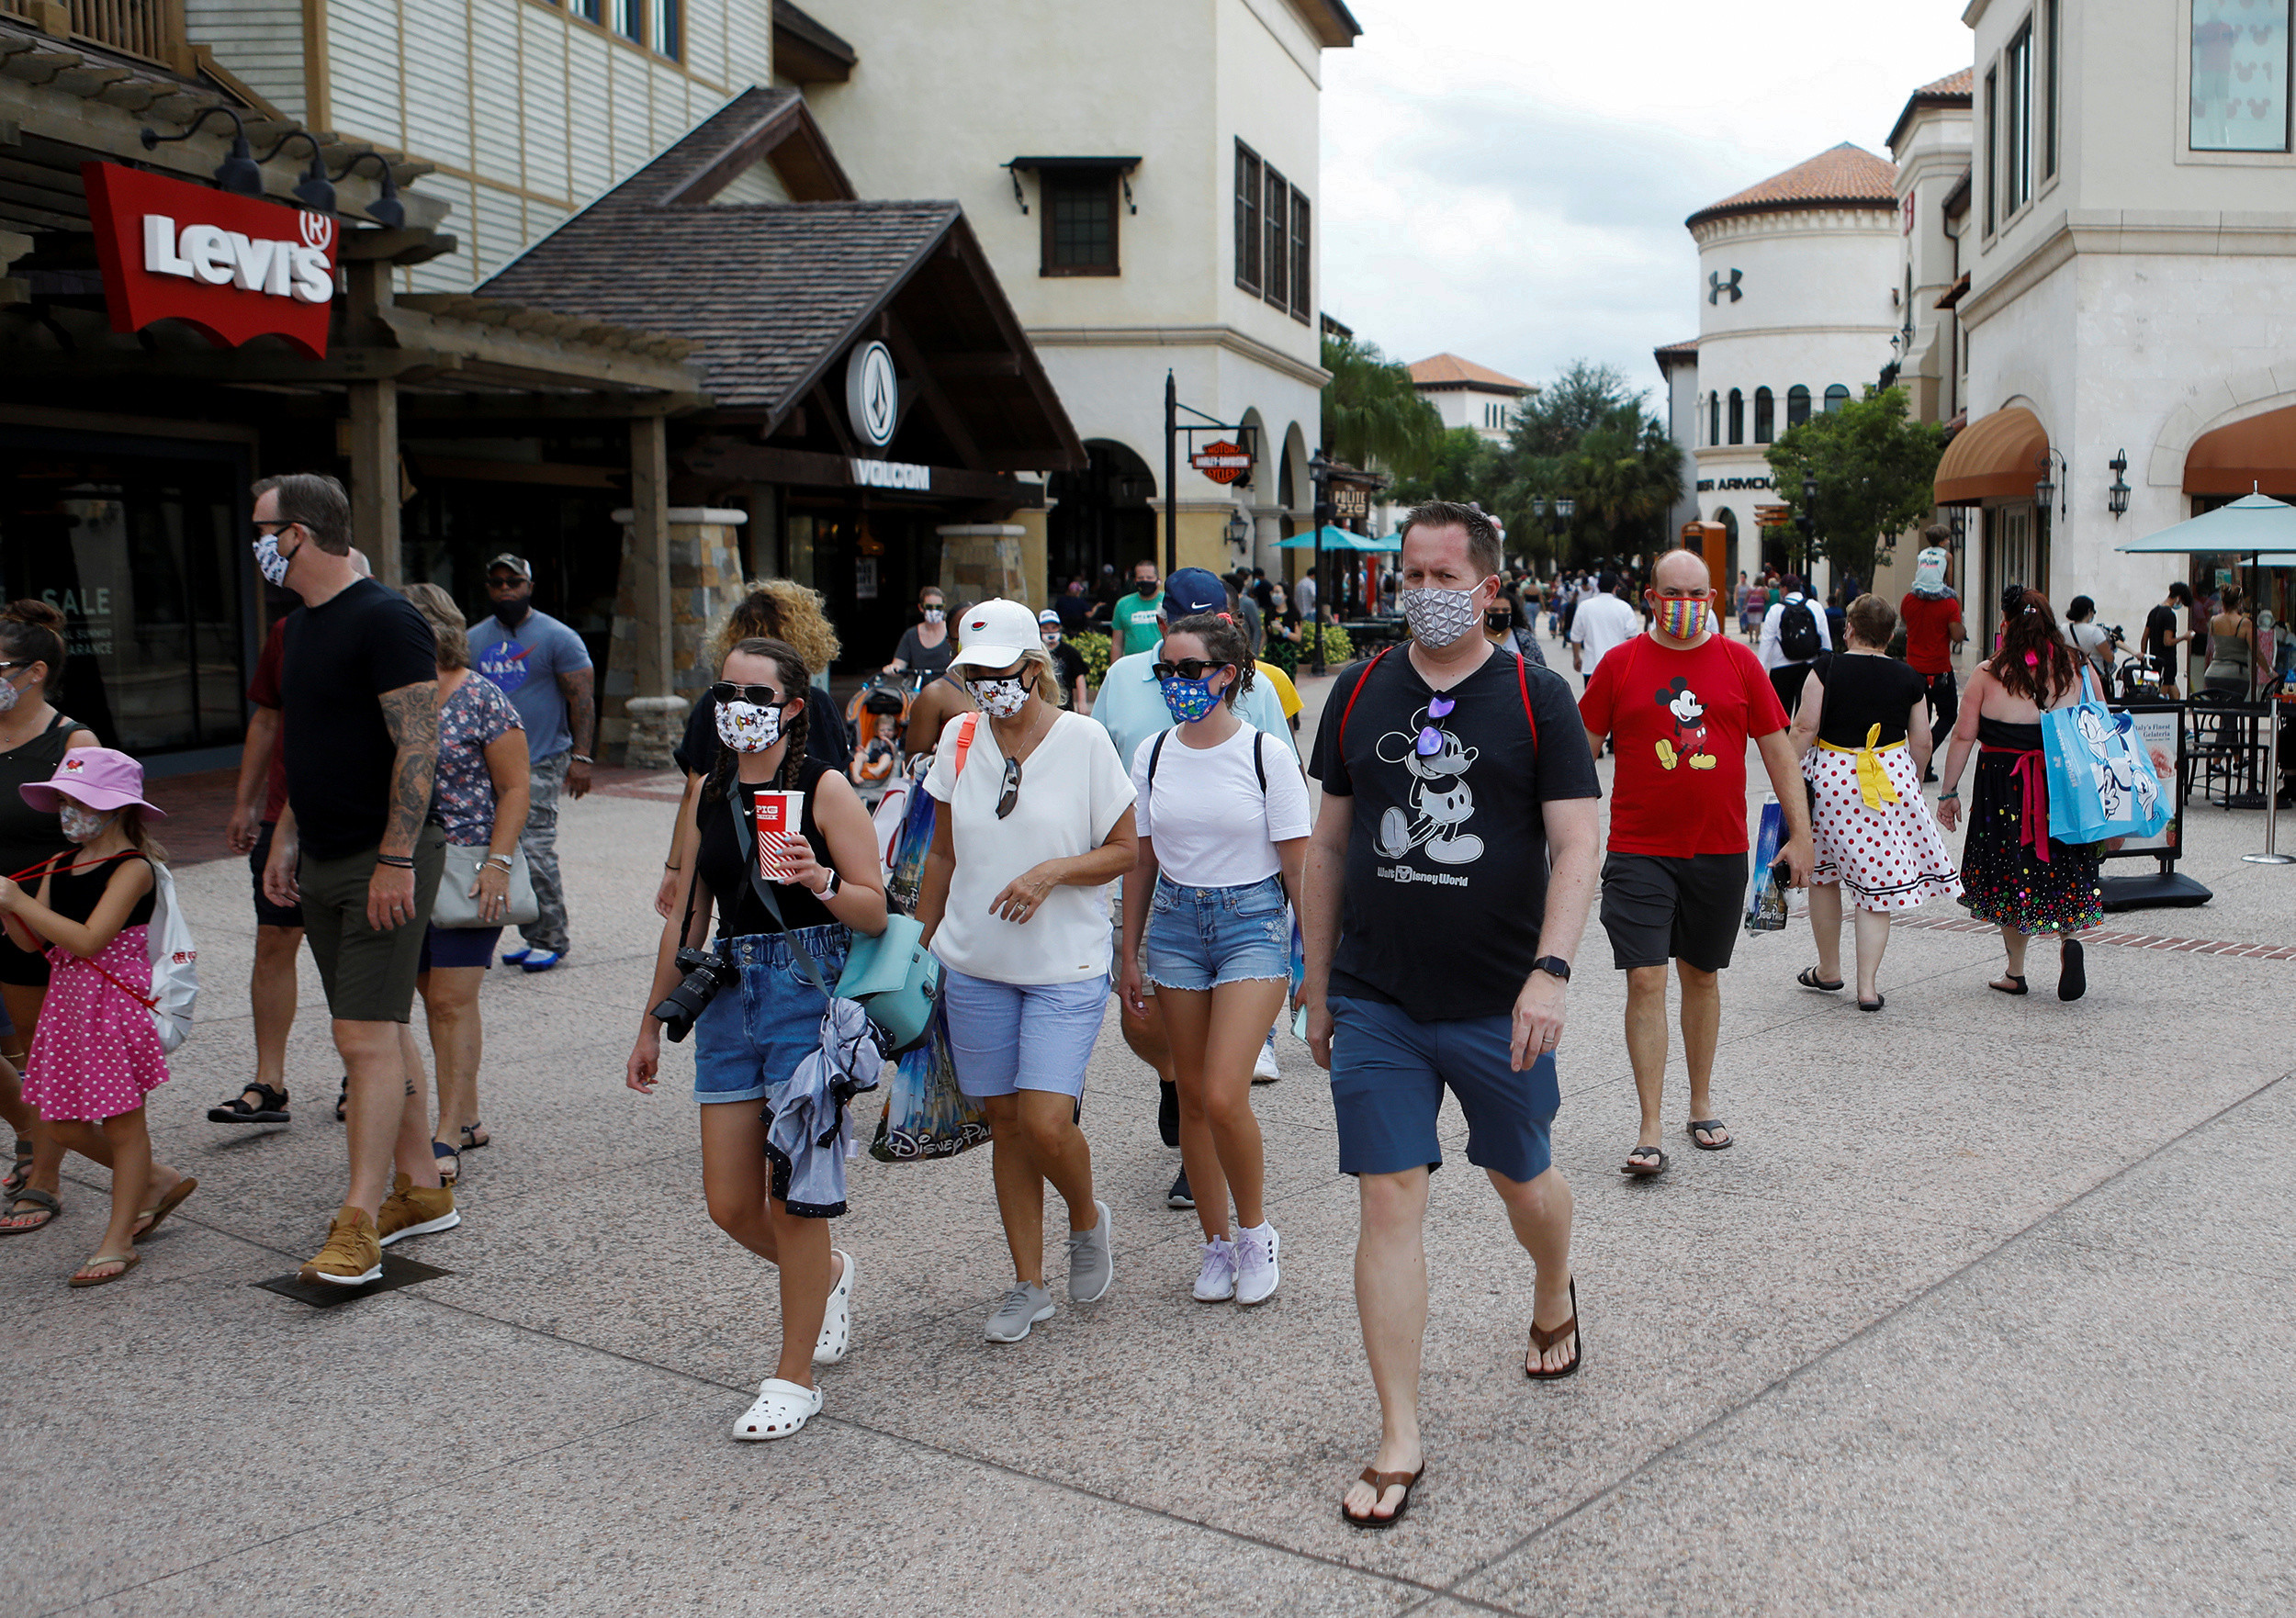 Disney Springs shoppers wear face masks and Disney-themed clothing while Walt Disney World conducts a phased reopening from coronavirus disease (COVID-19) restrictions in Lake Buena Vista, Florida, U.S. July 11, 2020. REUTERS/Octavio Jones - RC28RH91SW04